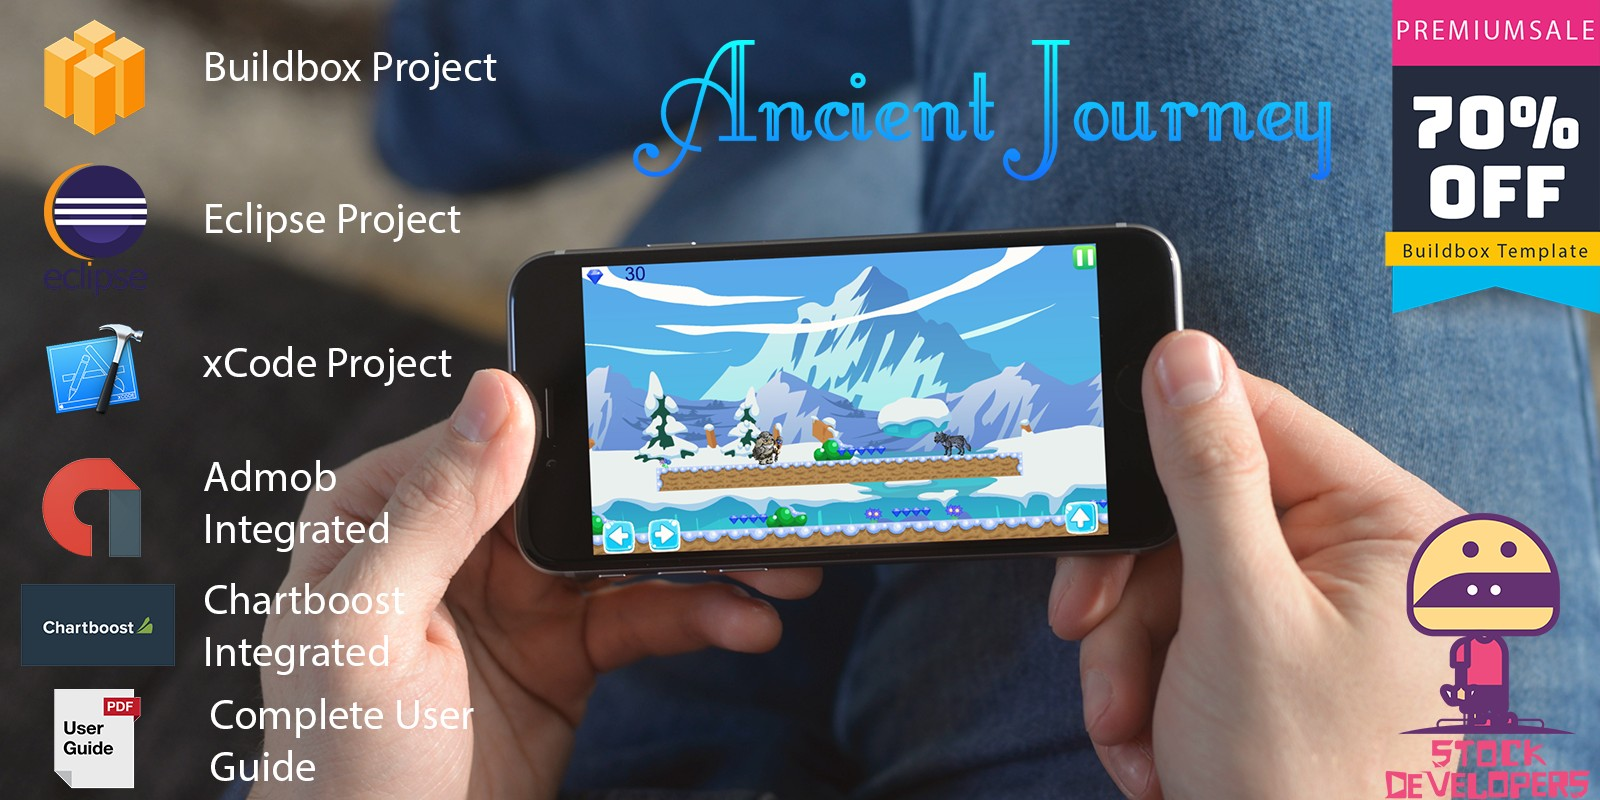 Ancient Journey - Buildbox Project